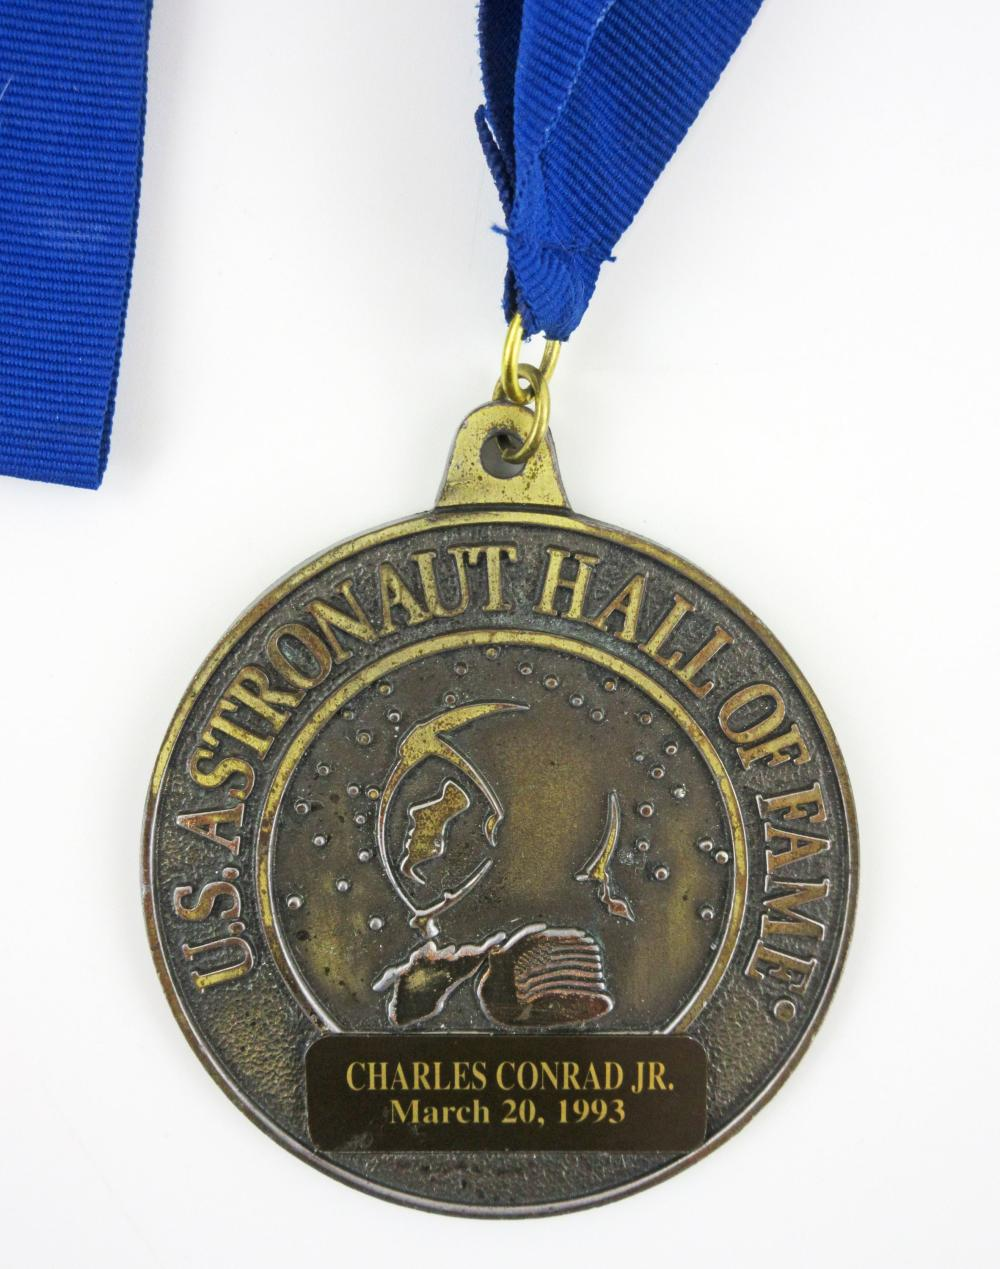 Charles Conrad Jr. U.S. Astronaut Hall of Fame Medal, Presented to Mercury 7 Astronauts Upon Induction